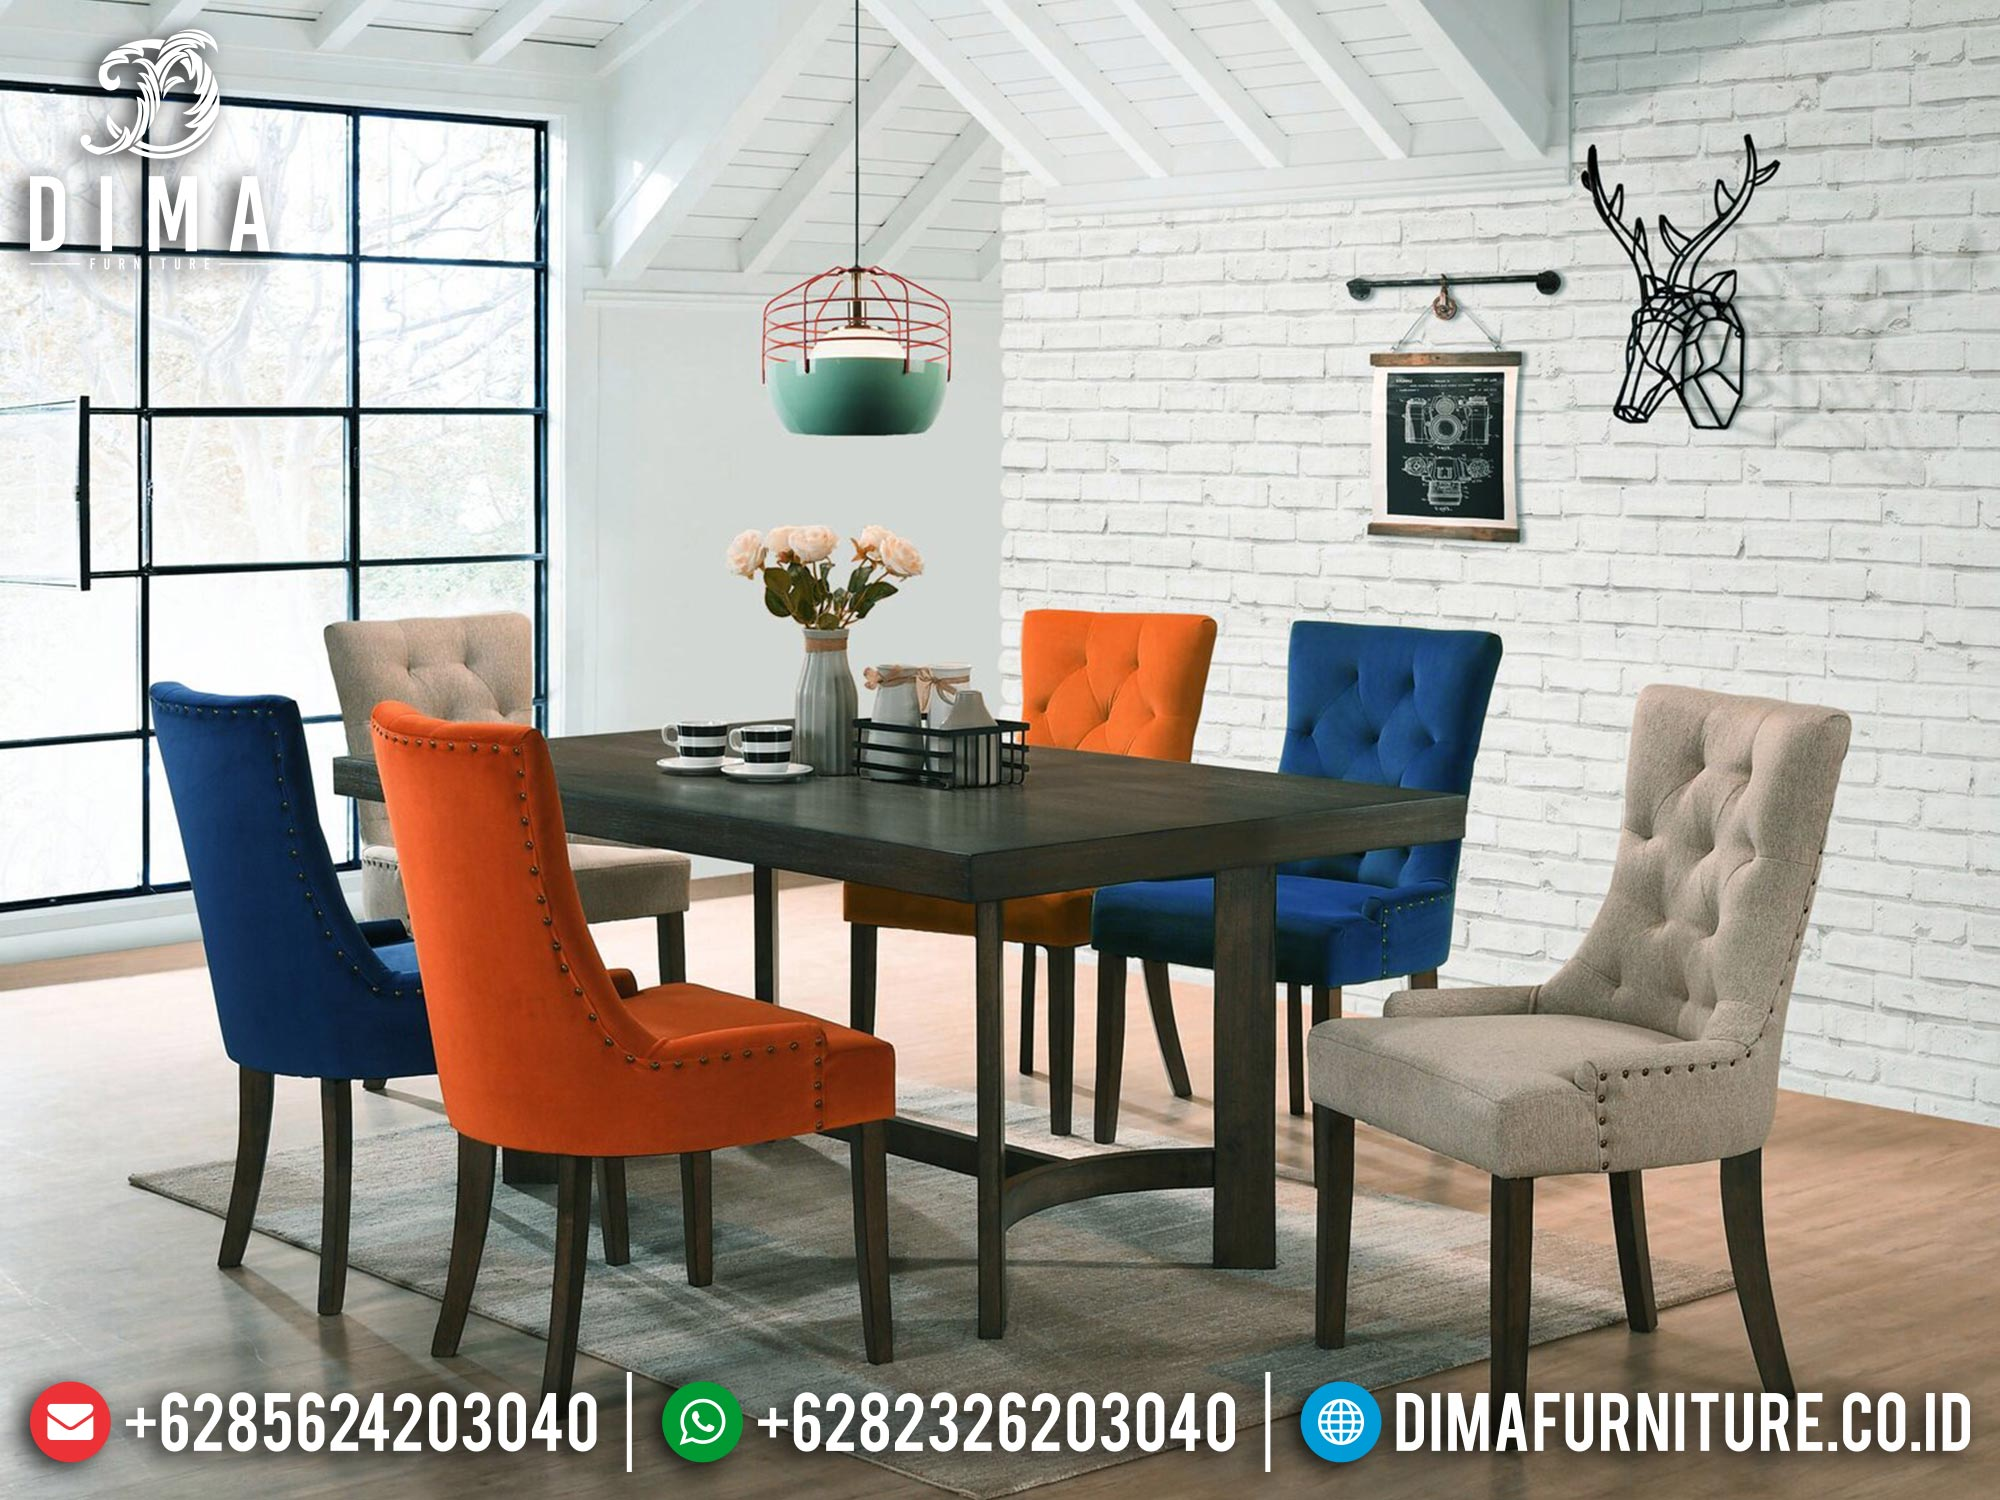 Meja Makan Minimalis Kursi 6 New Design Ridiculous Furniture Jepara MM-1066